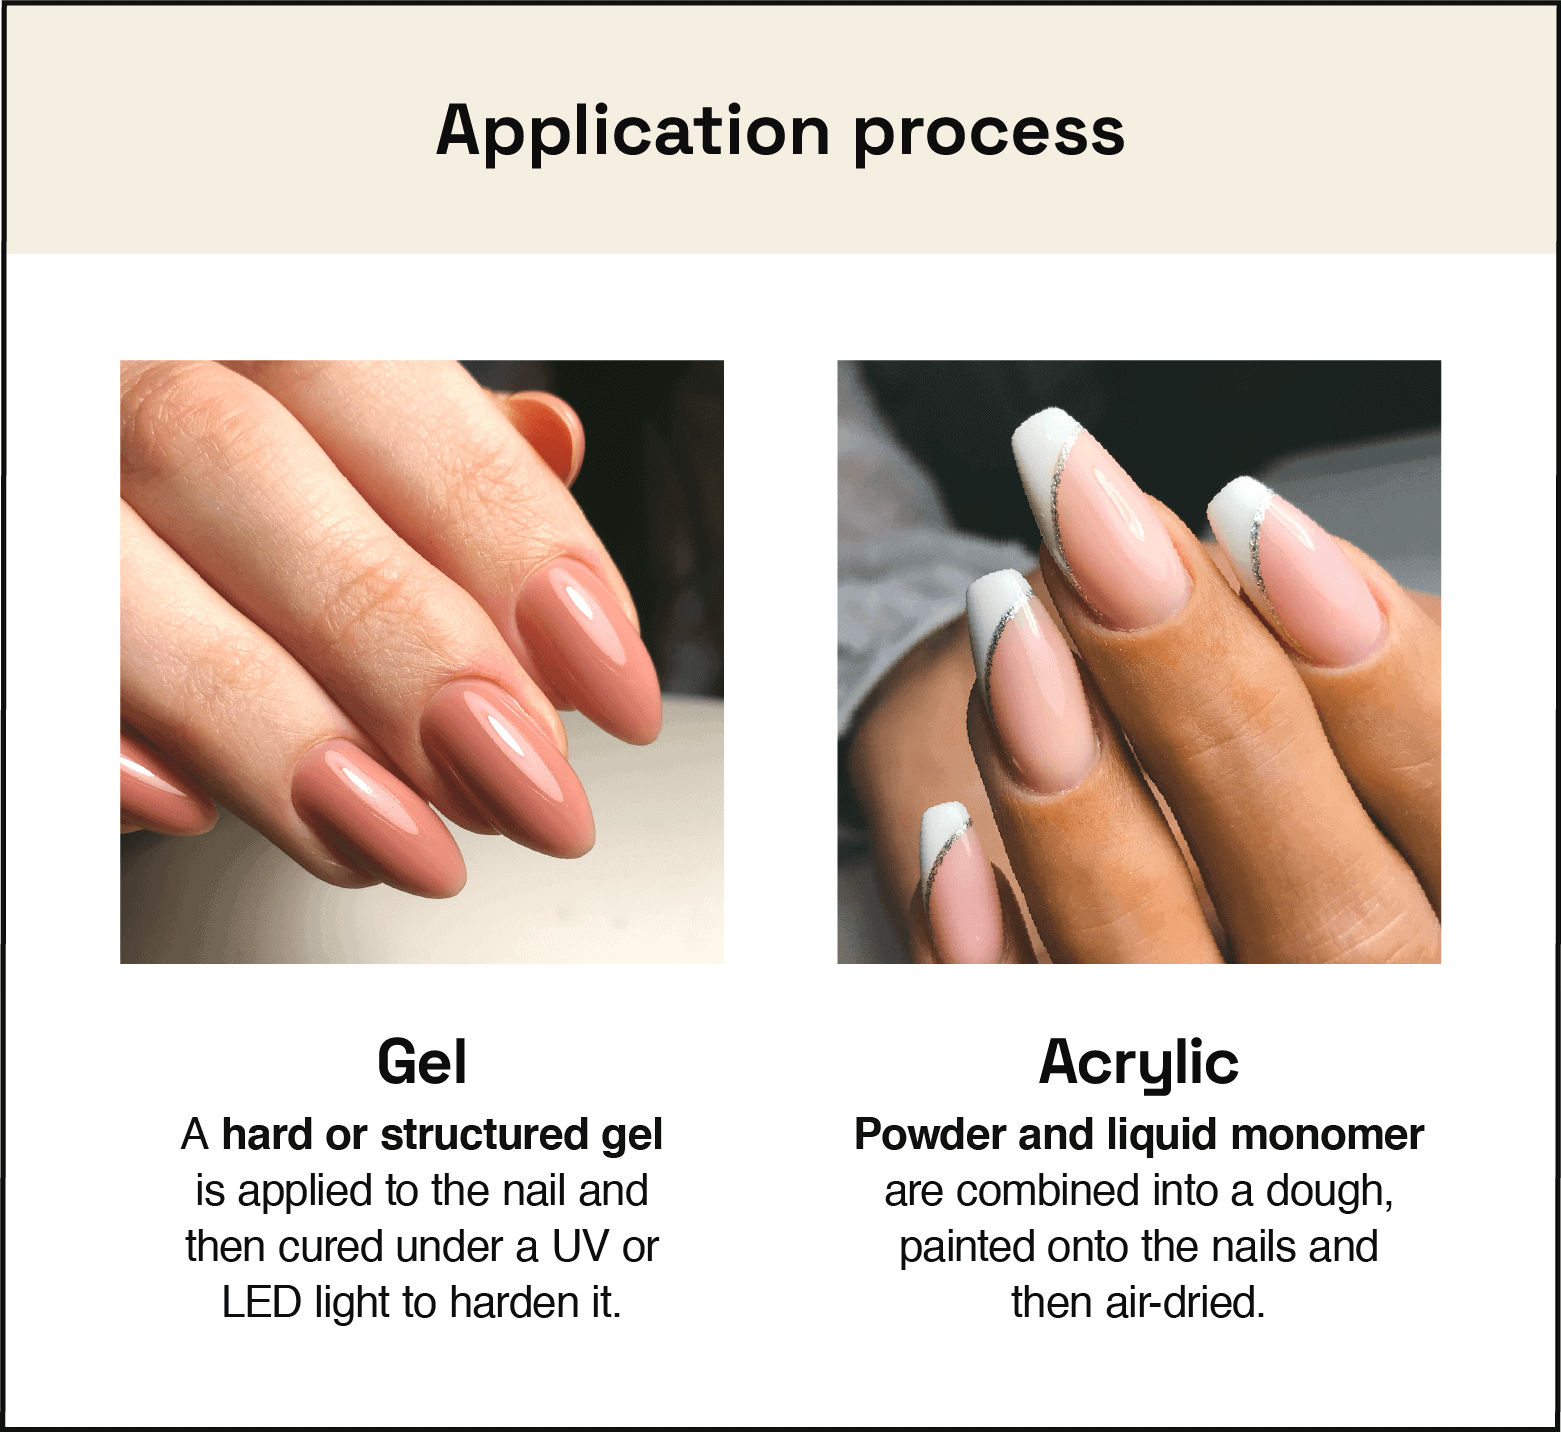 comparing gel and acrylic application process